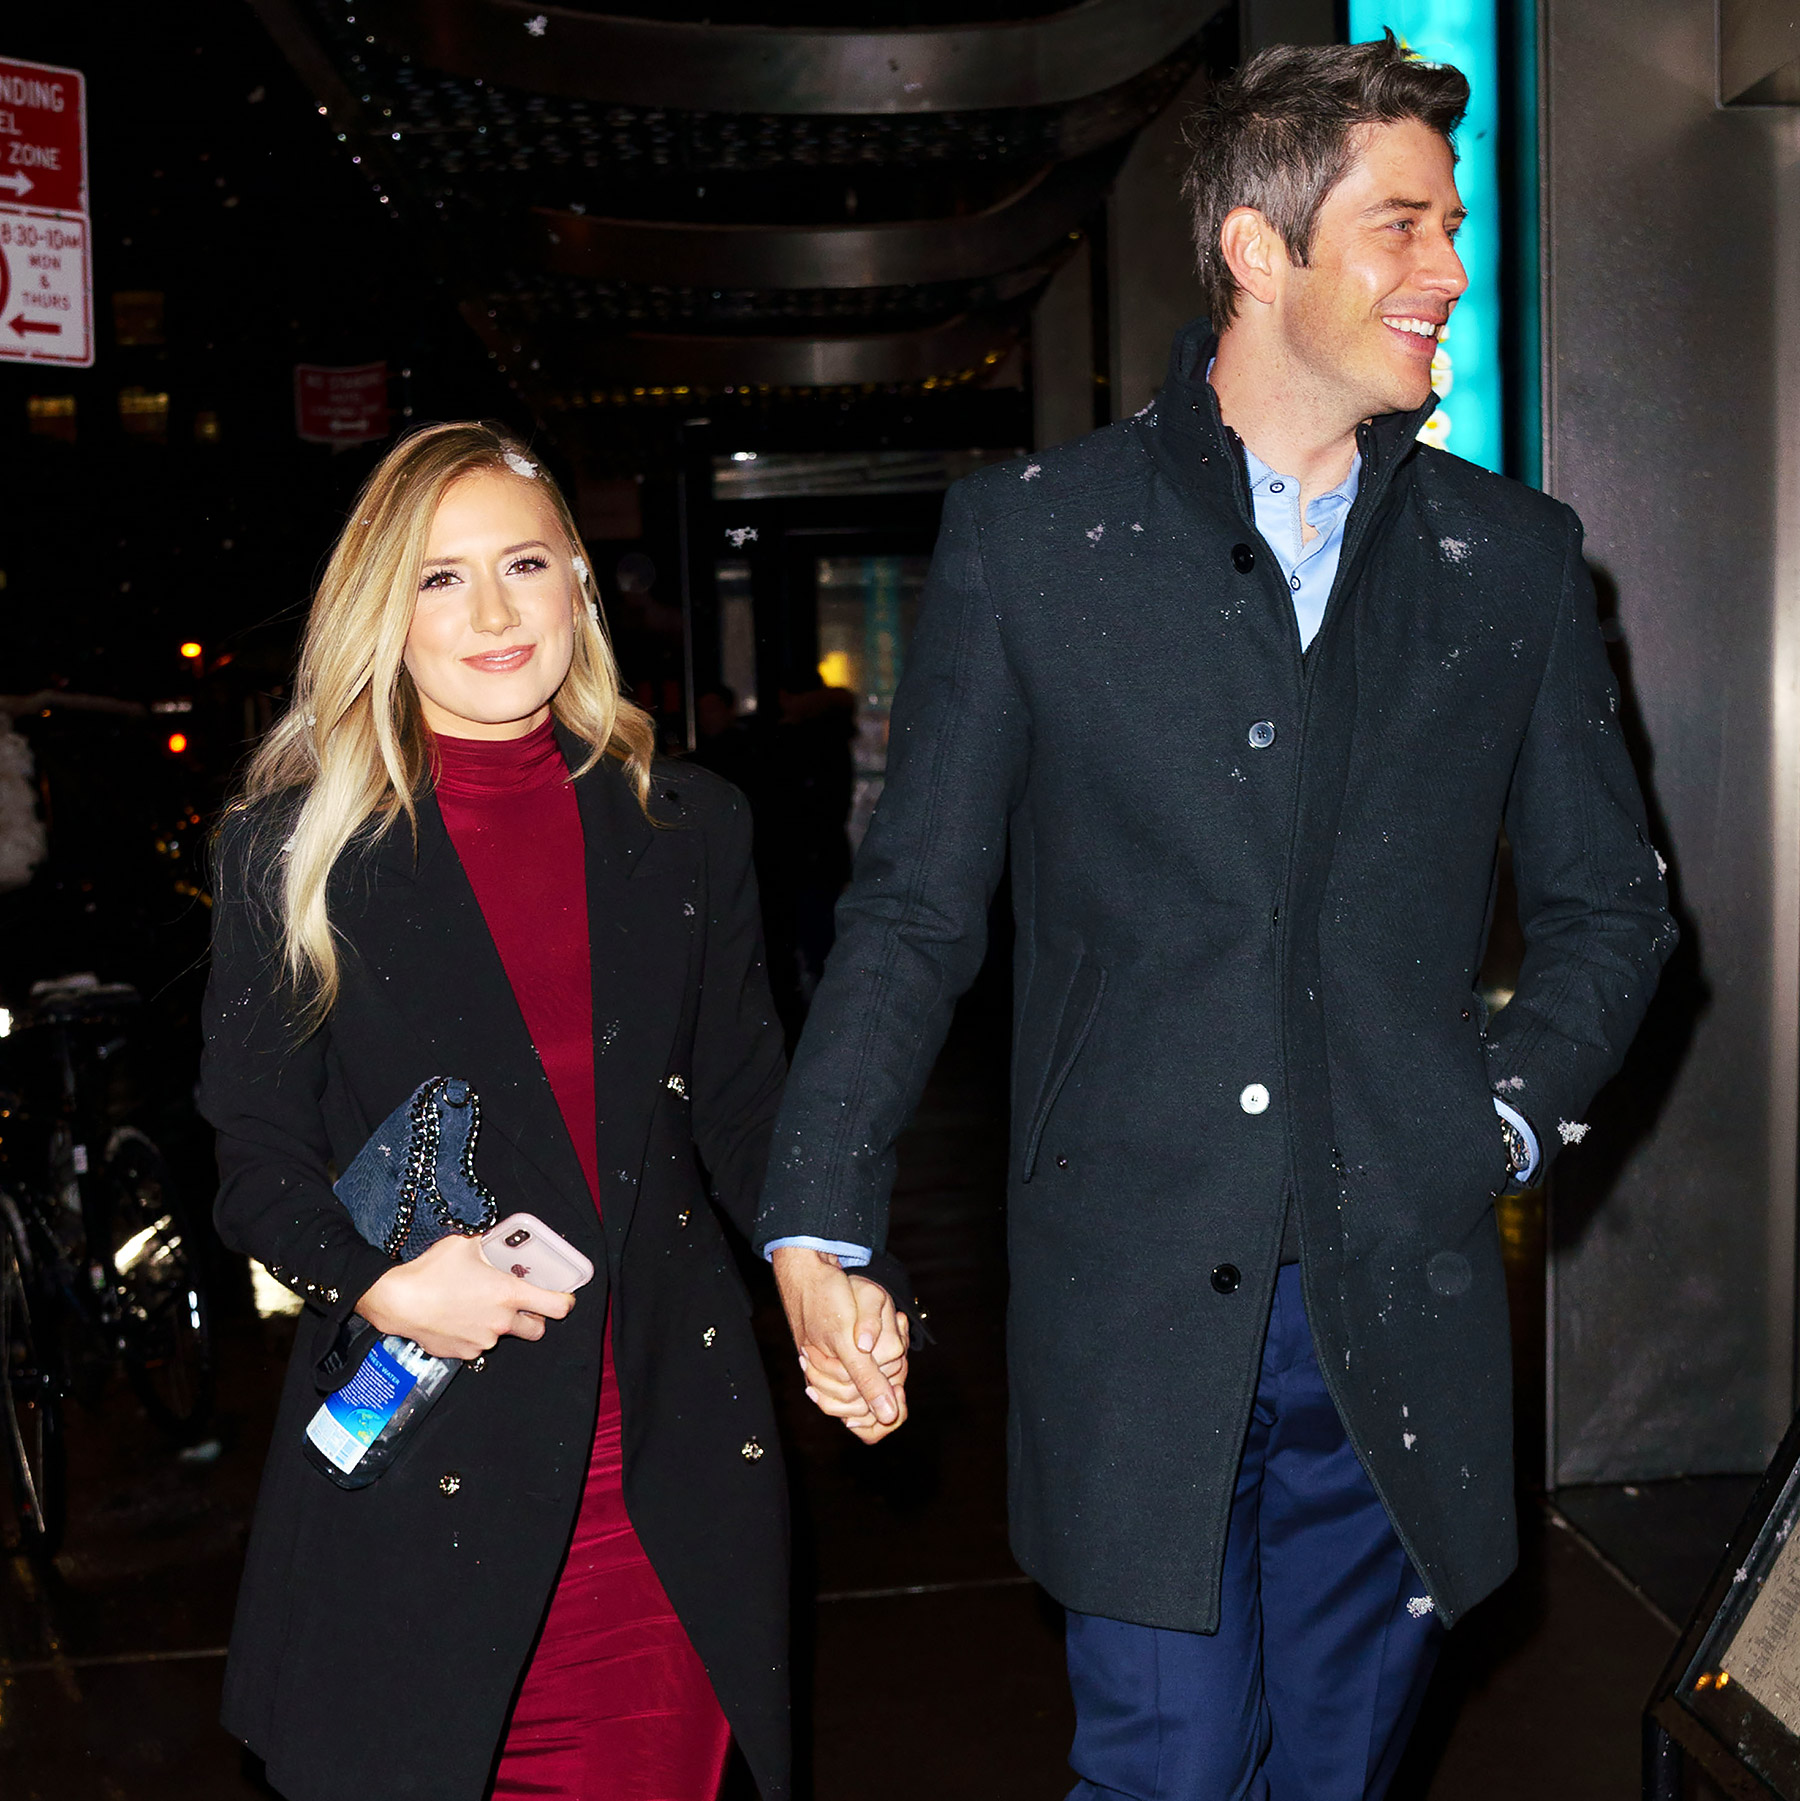 EXCLUSIVE: Newly-engaged 'Bachelor' star Arie Luyendyk and Lauren Burnham go for a romantic dinner at Megu in New York